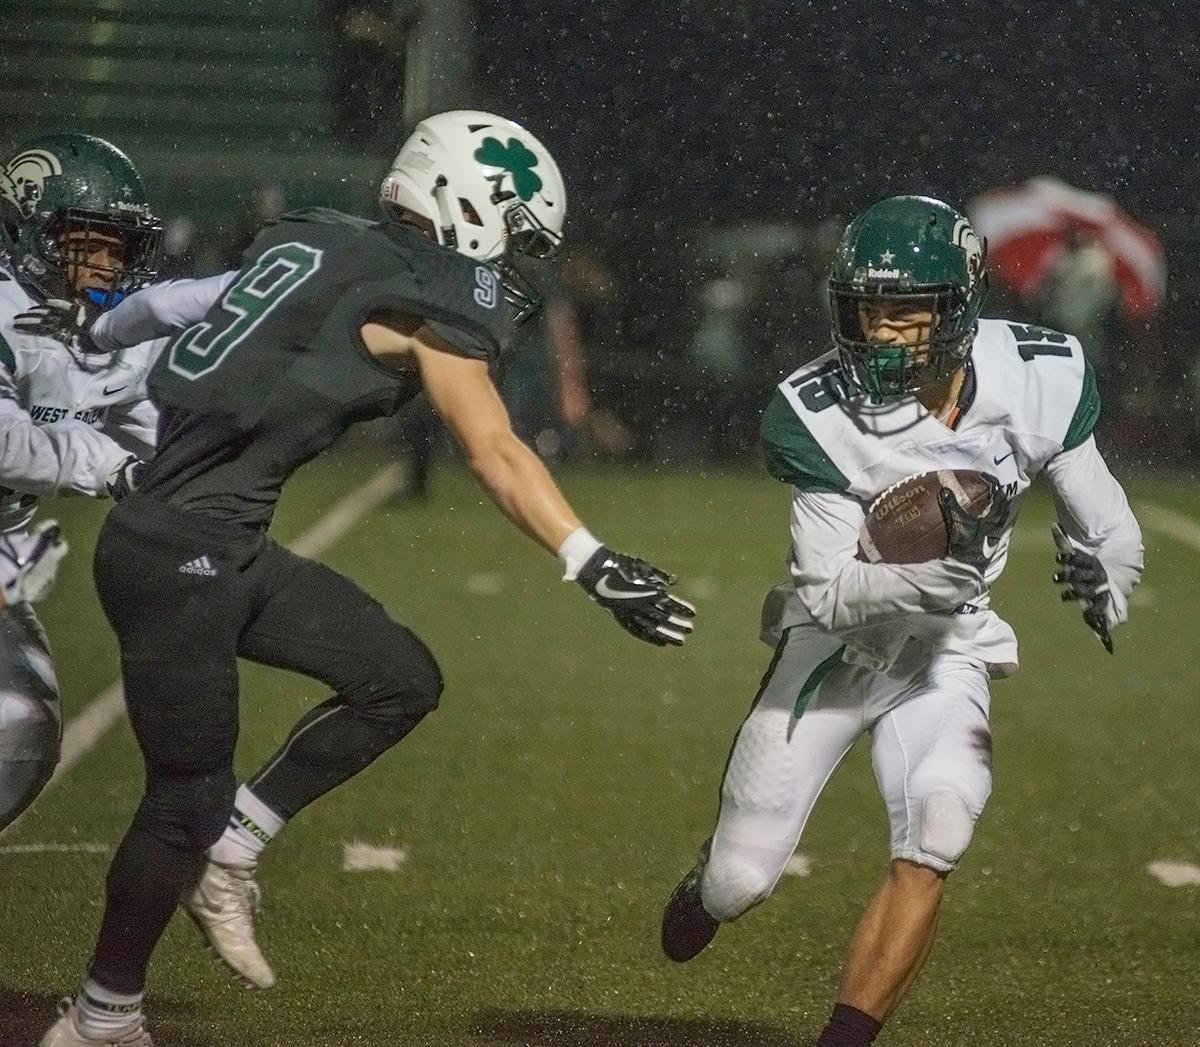 West Salem Titans wide receiver Anthony Gould (#15) dodges Sheldon Irish wide receiver Jack Folsom (#9).  On a rainy Monday evening, Sheldon defeated West Salem 41 to 7 at their home field. The game had been postponed from Friday due to unhealthy levels of smoke in the atmosphere from nearby forest fires. Abigail Winn, Oregon News Lab